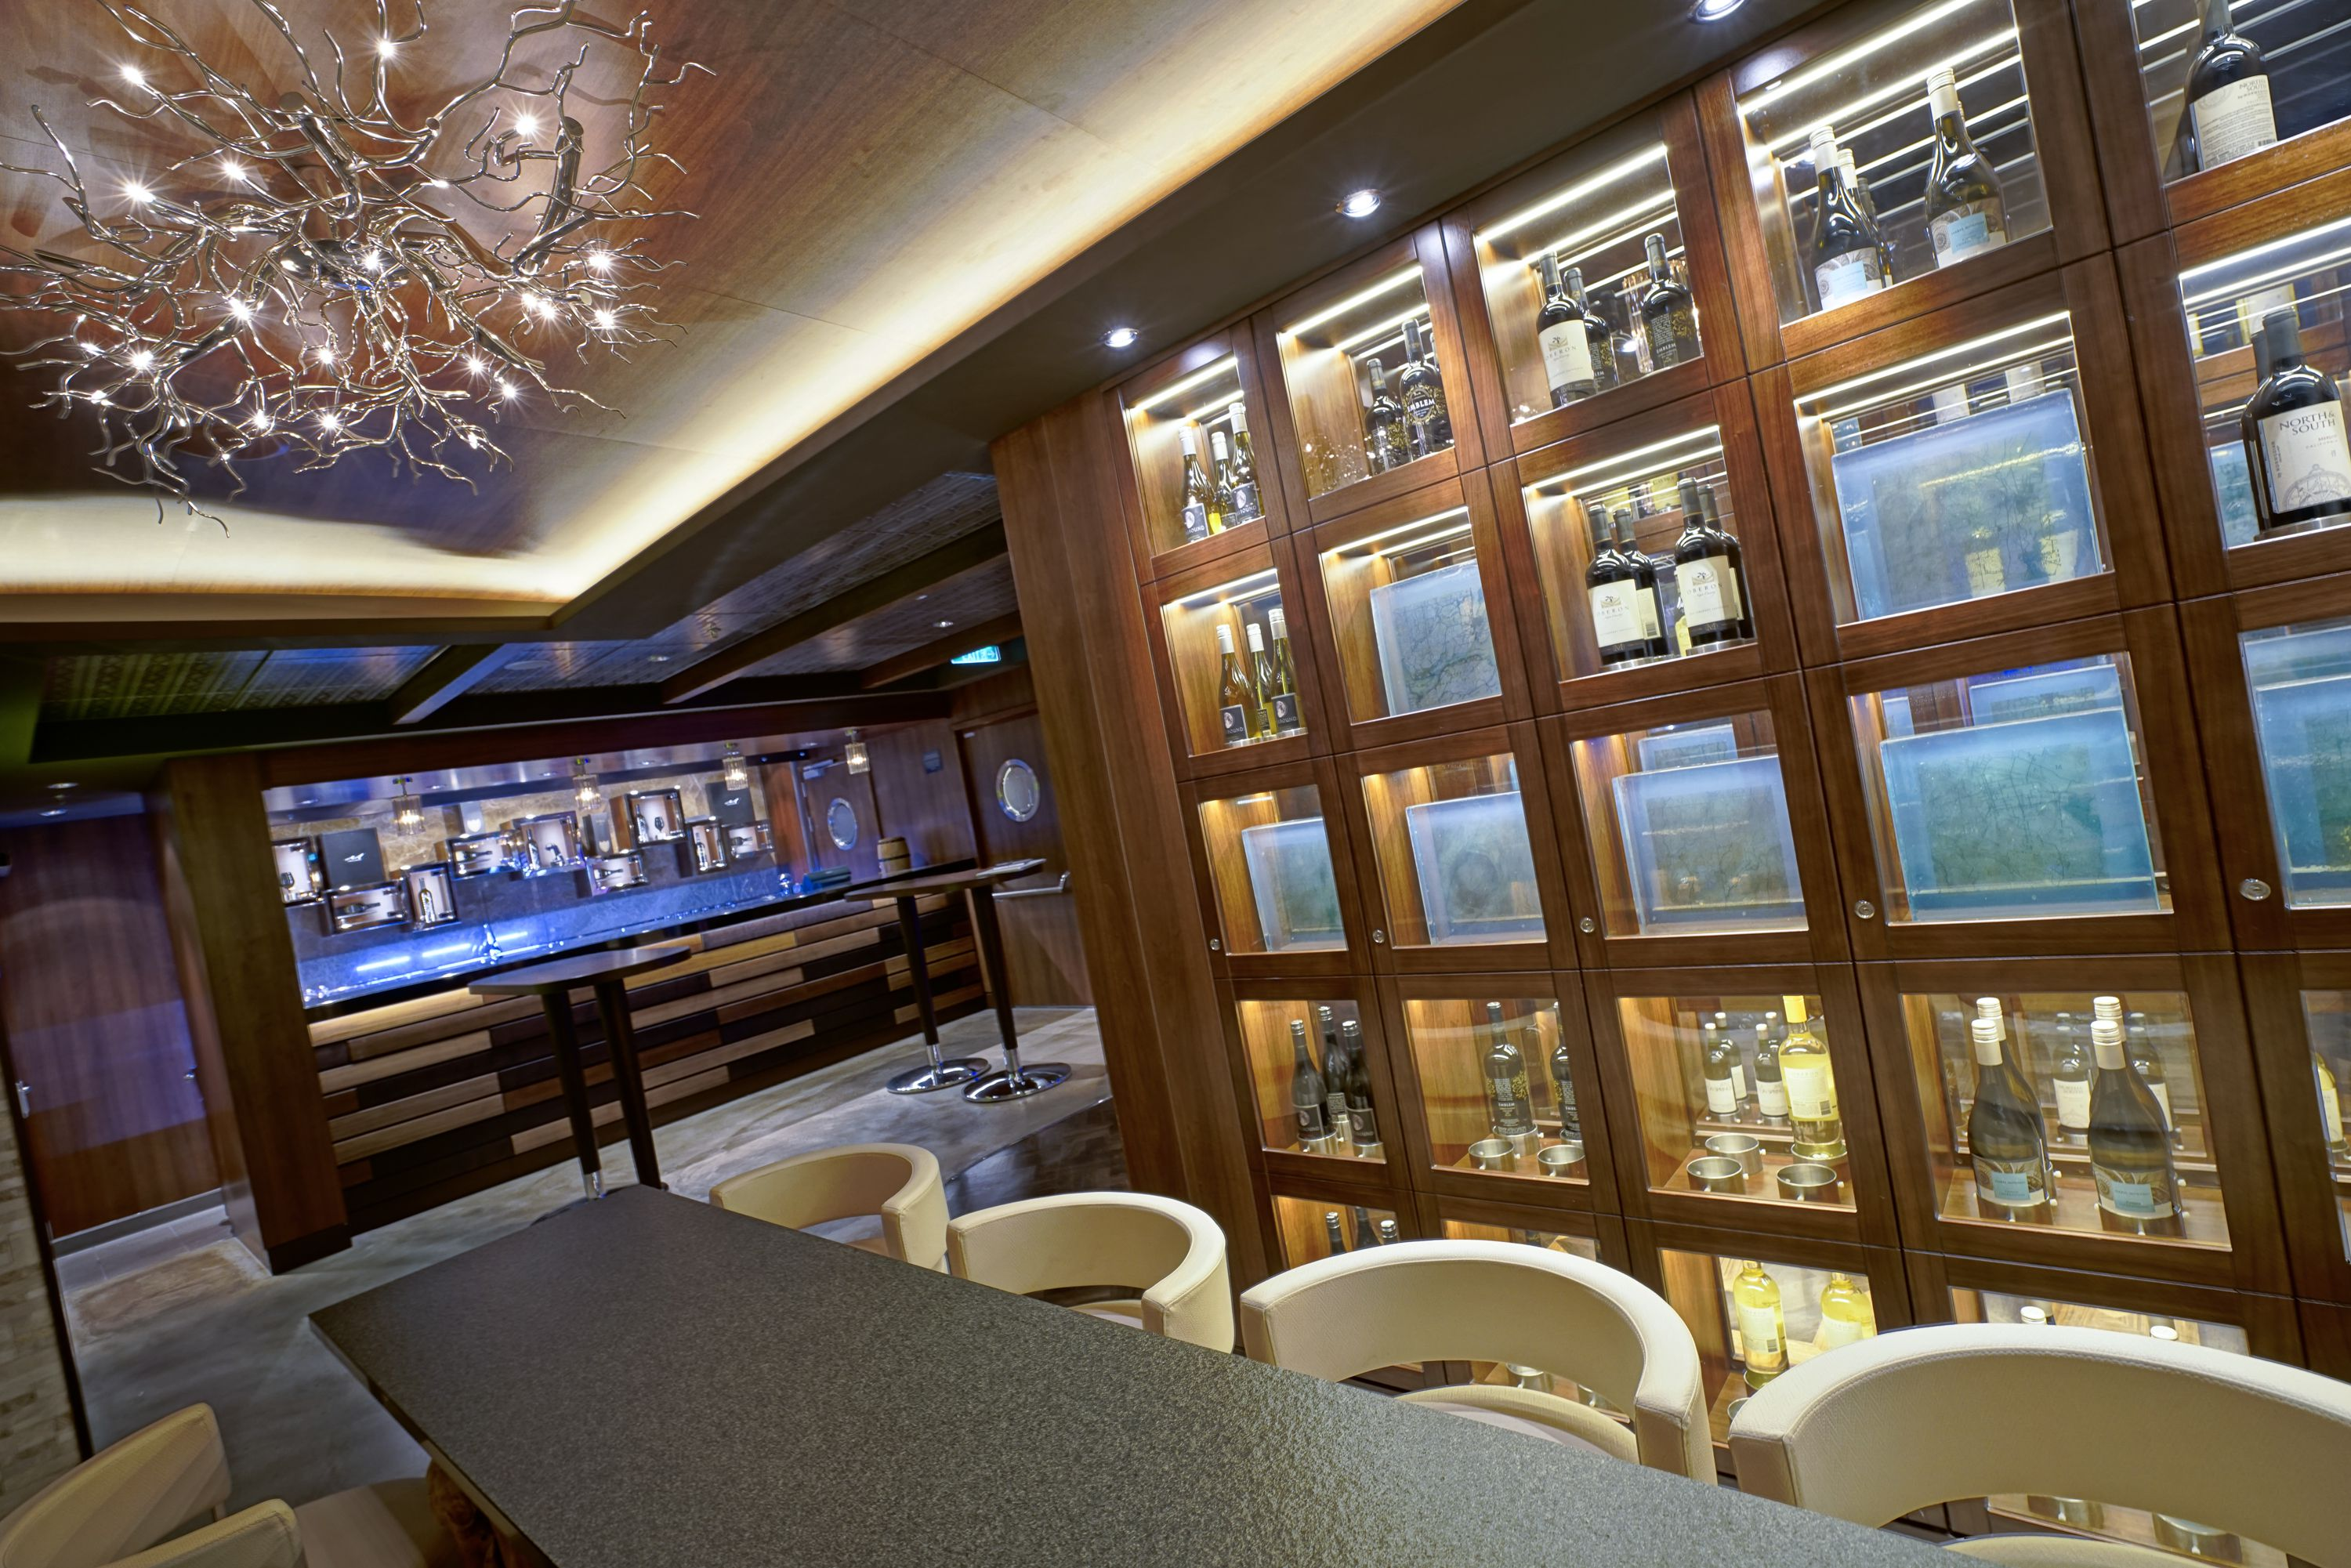 The Cellars Wine Bar on the Norwegian Escape